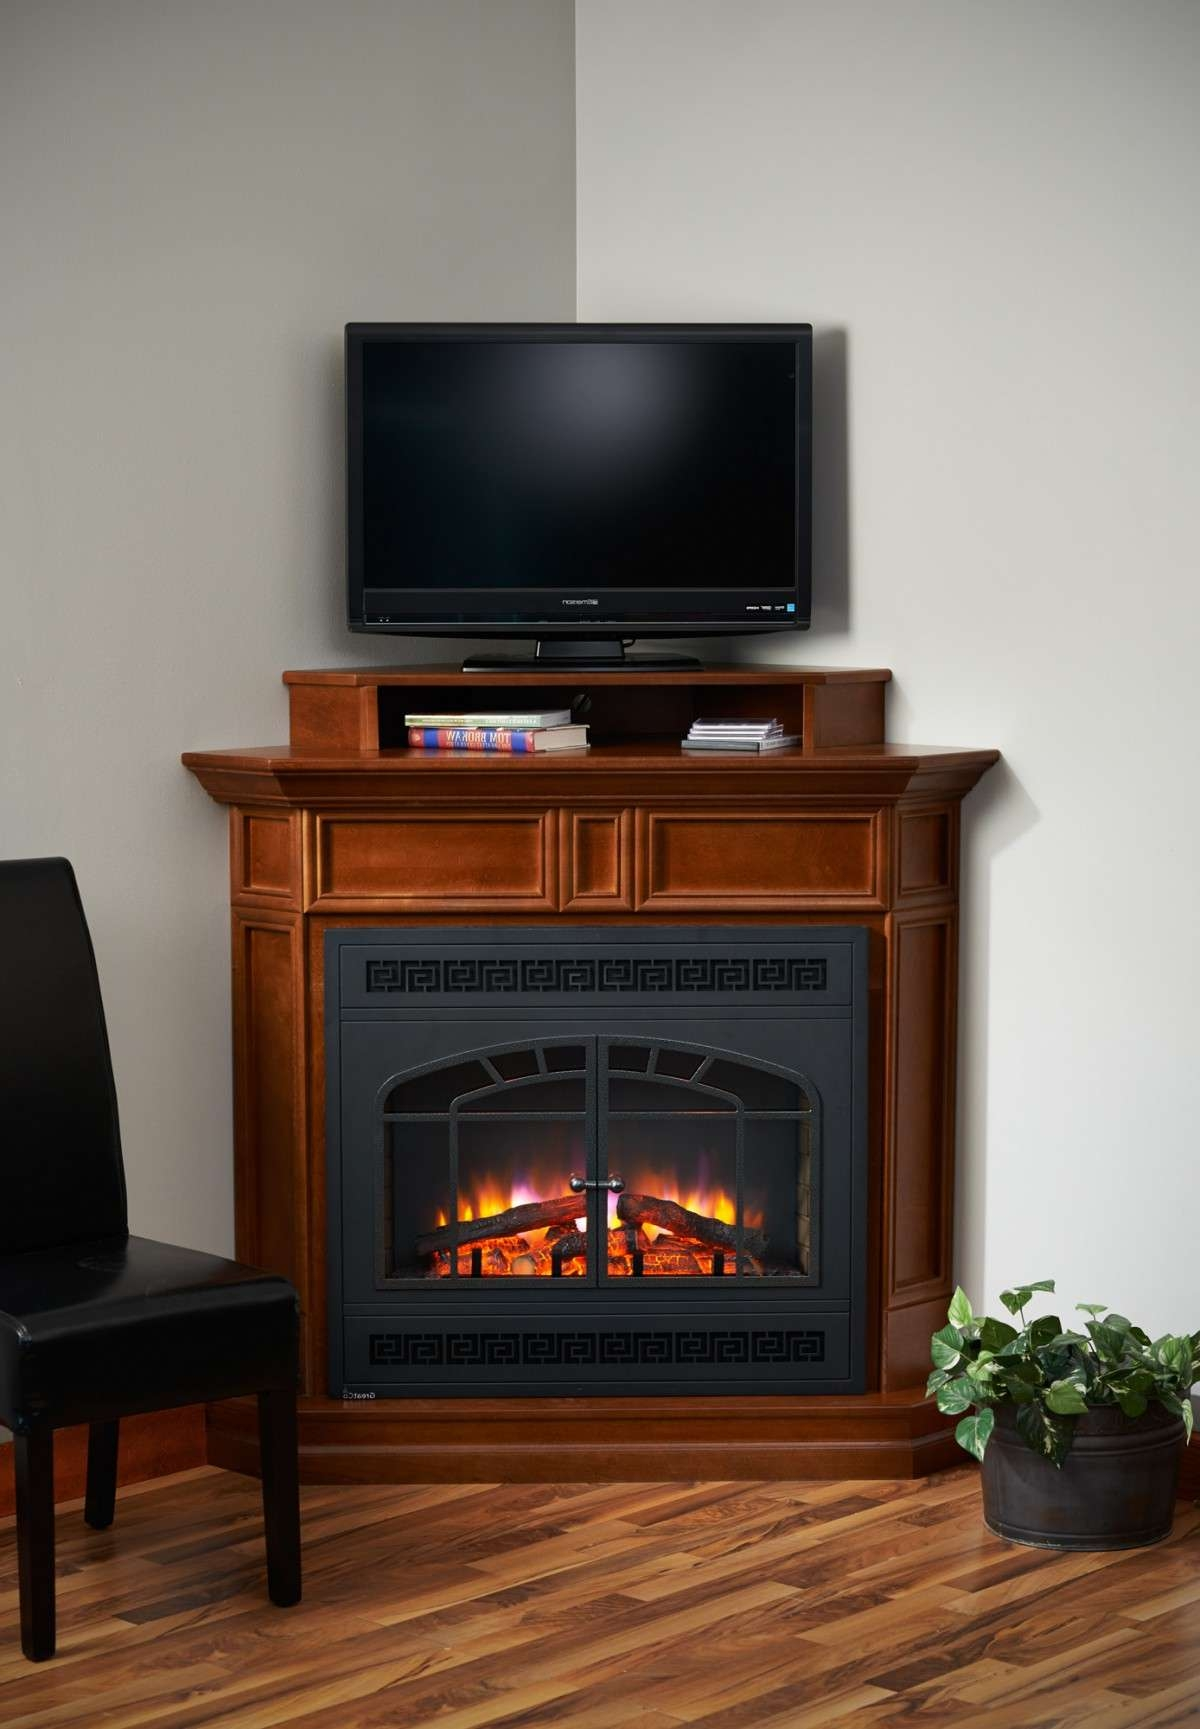 Corner Tv Cabinet Stereo Kitchen Shelf Free Standing Fireplace Pertaining To Tall Tv Cabinets Corner Unit (View 11 of 20)